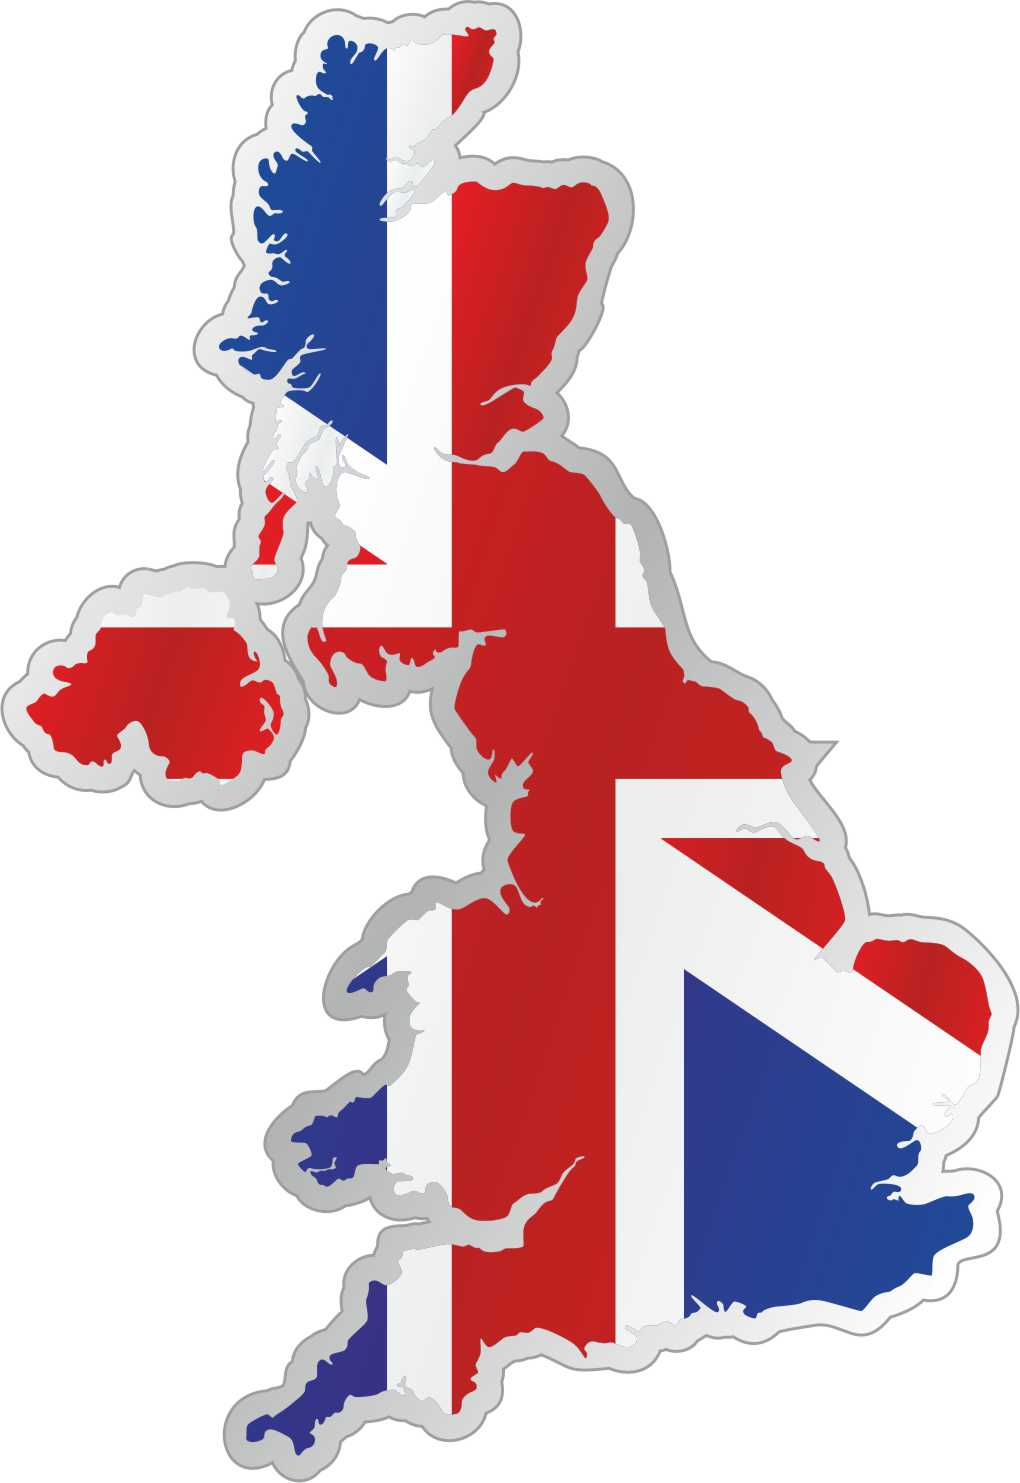 uk-union-jack-flag-map-design-4122-p